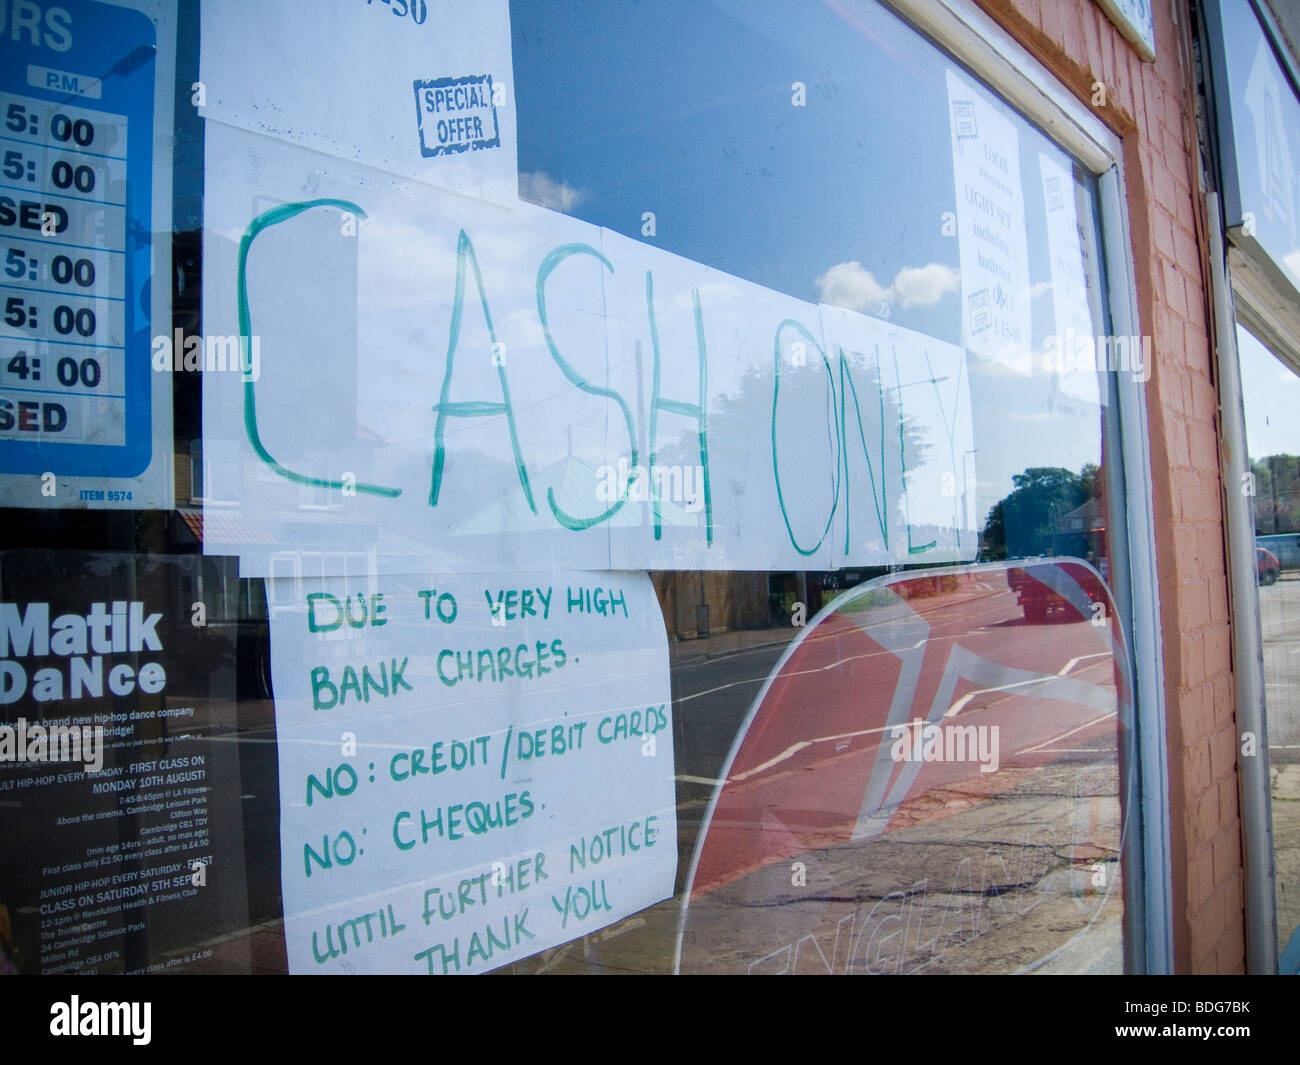 A CASH ONLY sign in a shop window, with a complaint/comment about high bank charges. - Stock Image